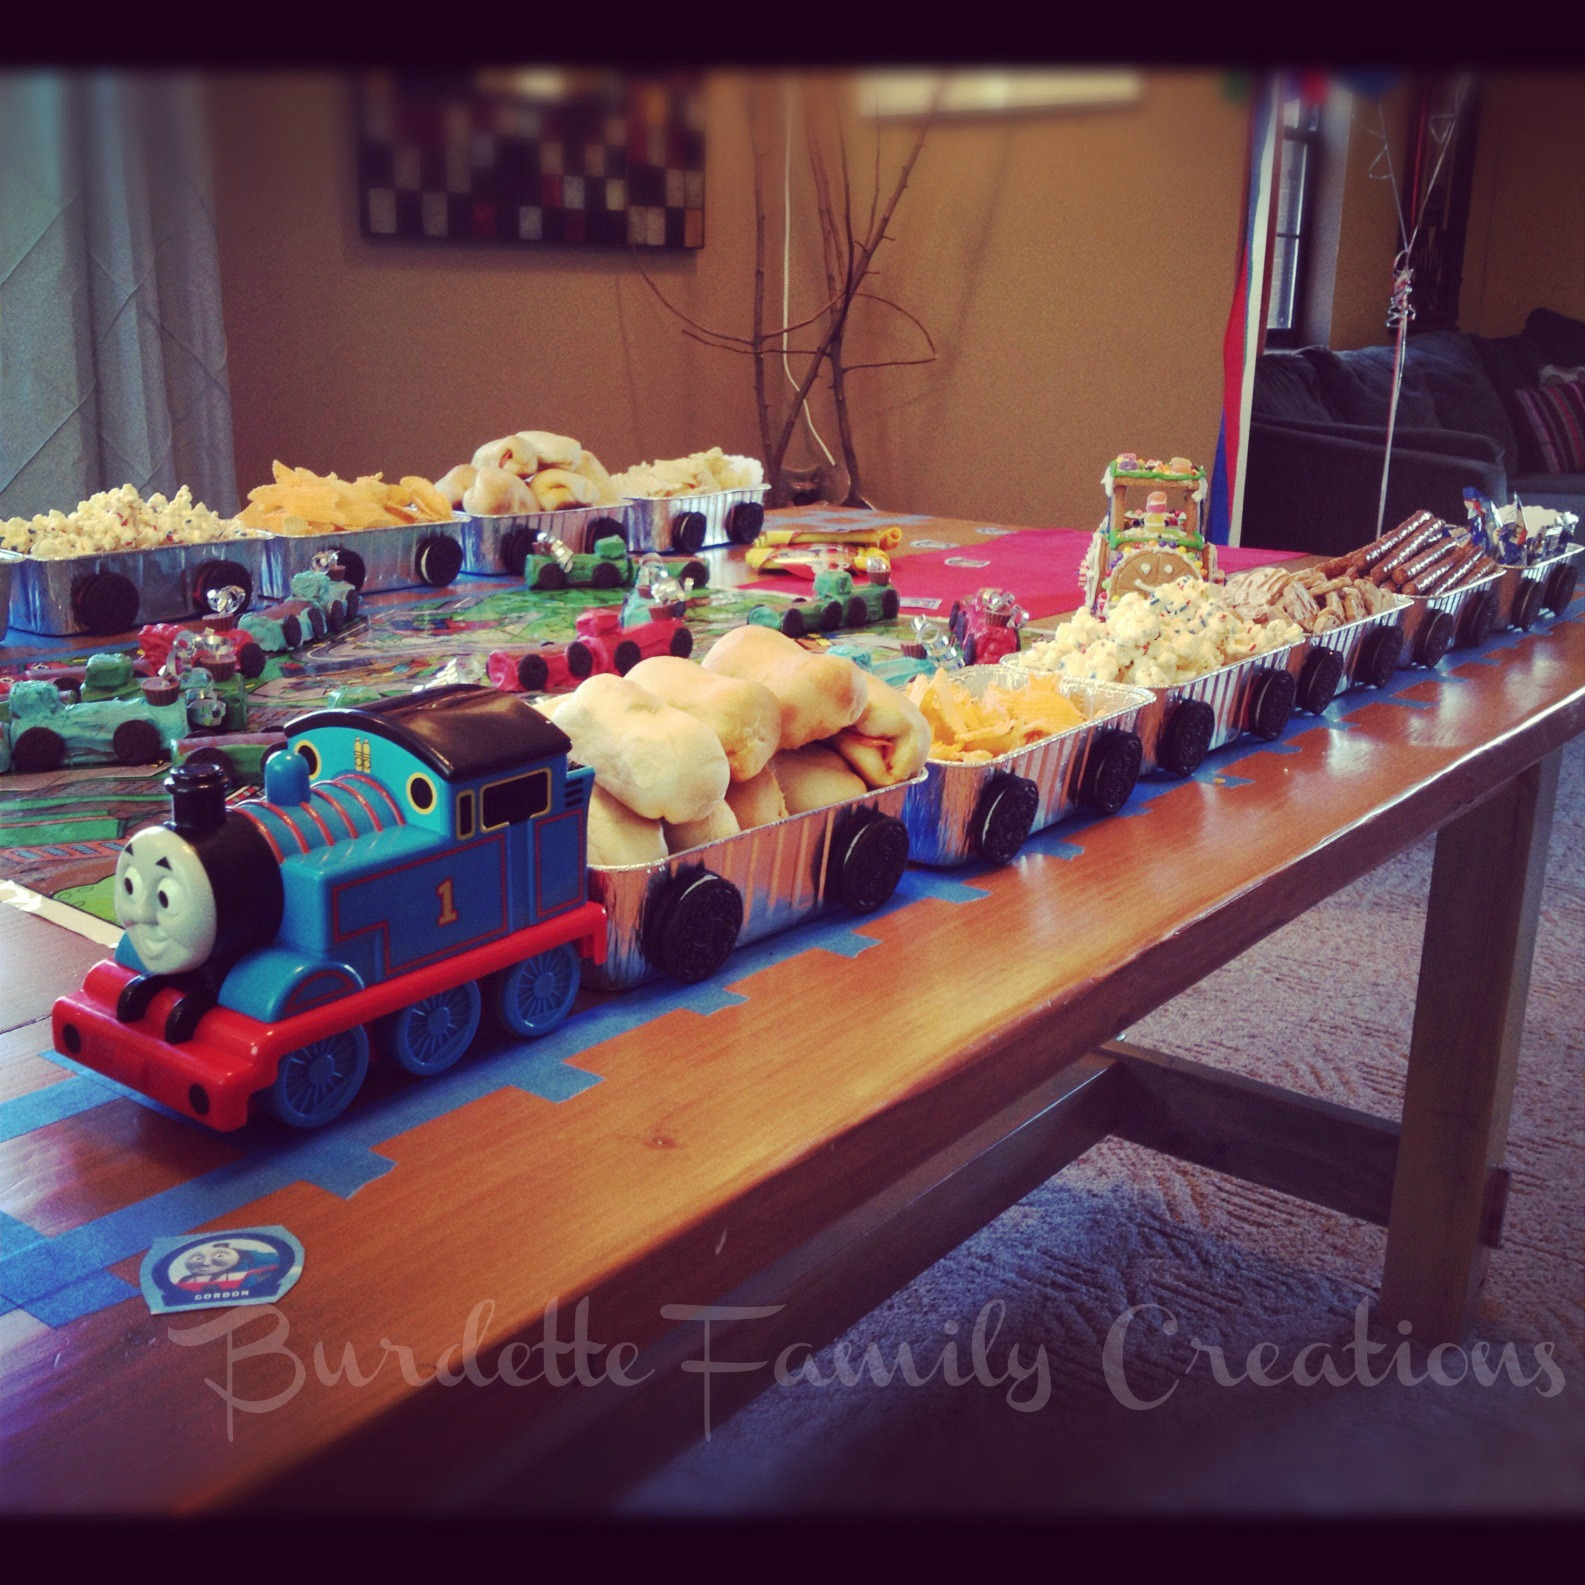 Burdette Family Creations: Thomas The Train Birthday Party